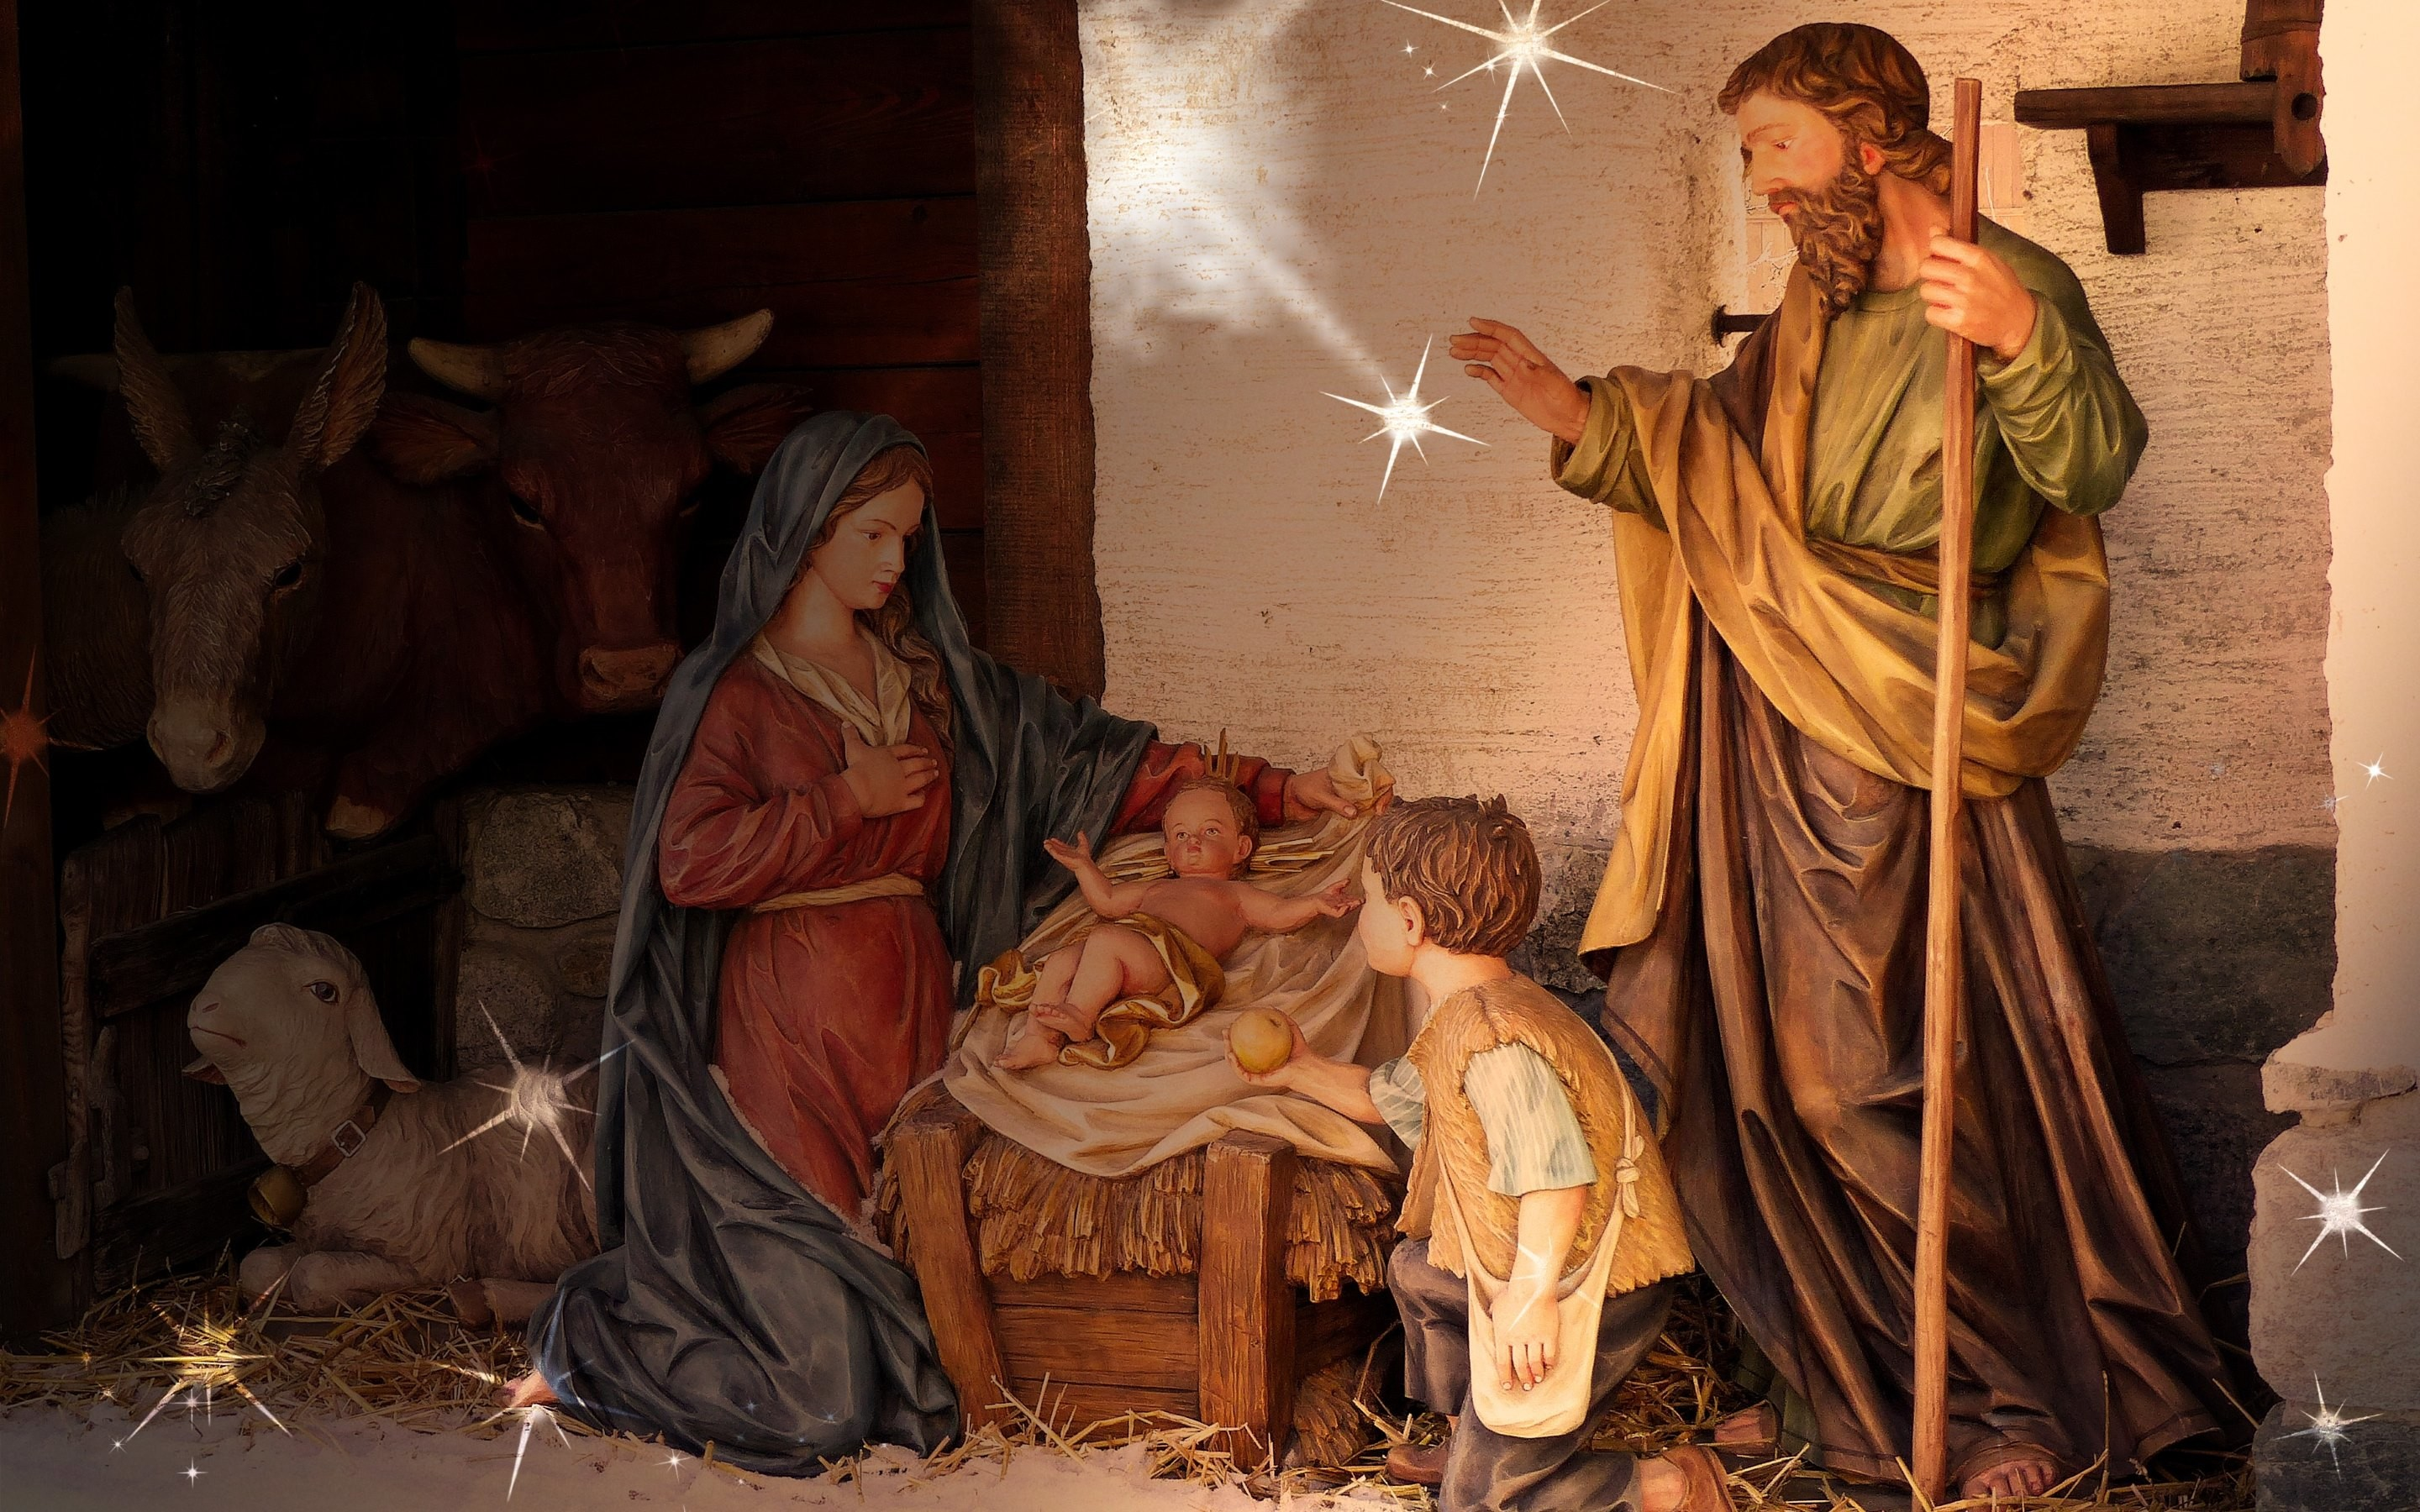 2880x1800 HD Wallpaper: Birth of Jesus scene at every Christmas